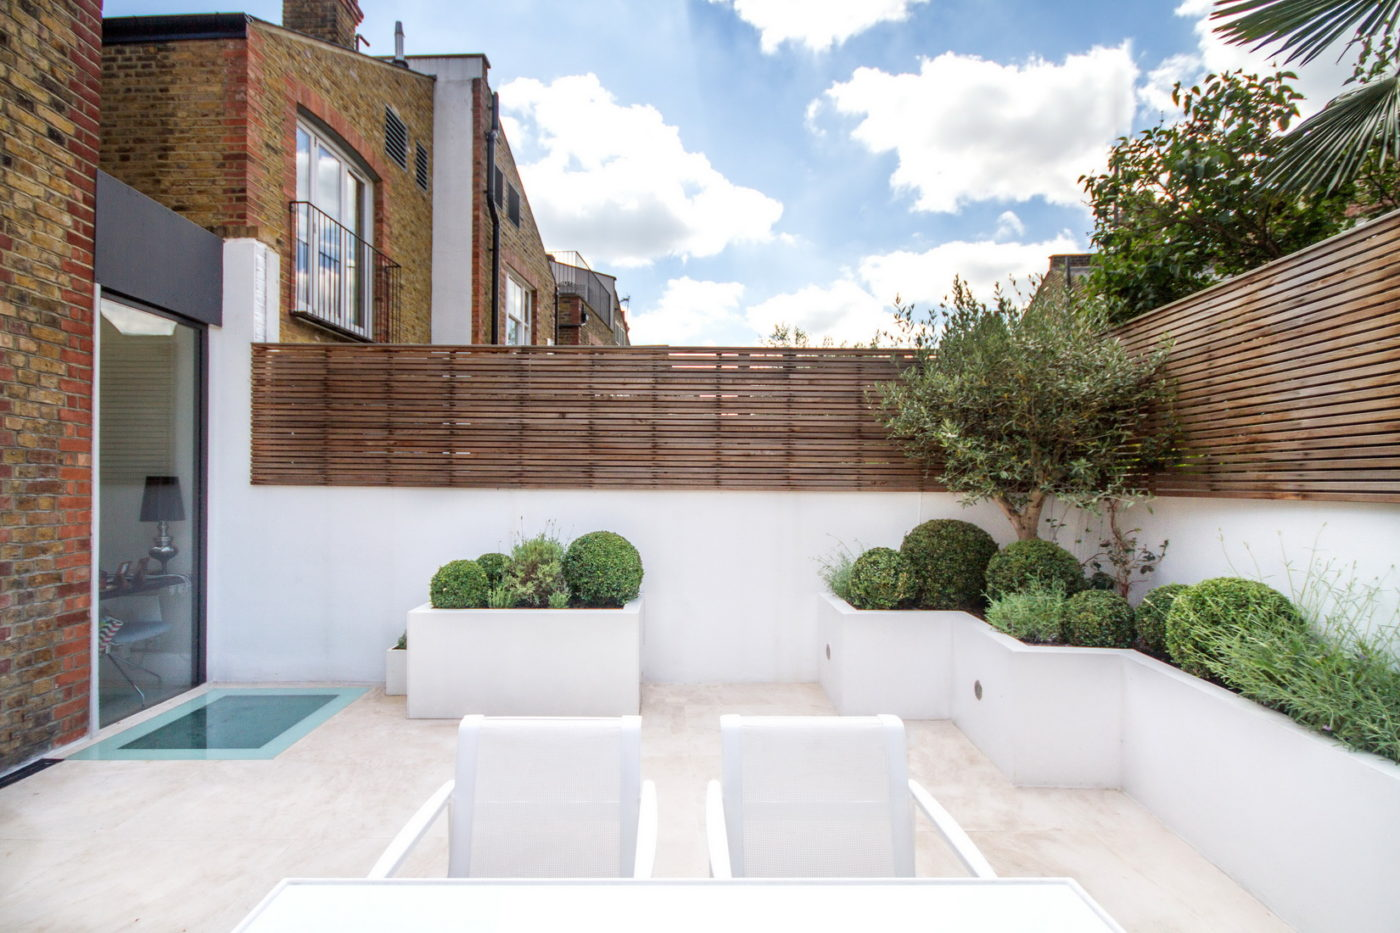 Jonathan Snow landscape and garden designer created a clean and contemporary outdoor space in Fulham, London property with low maintenance.